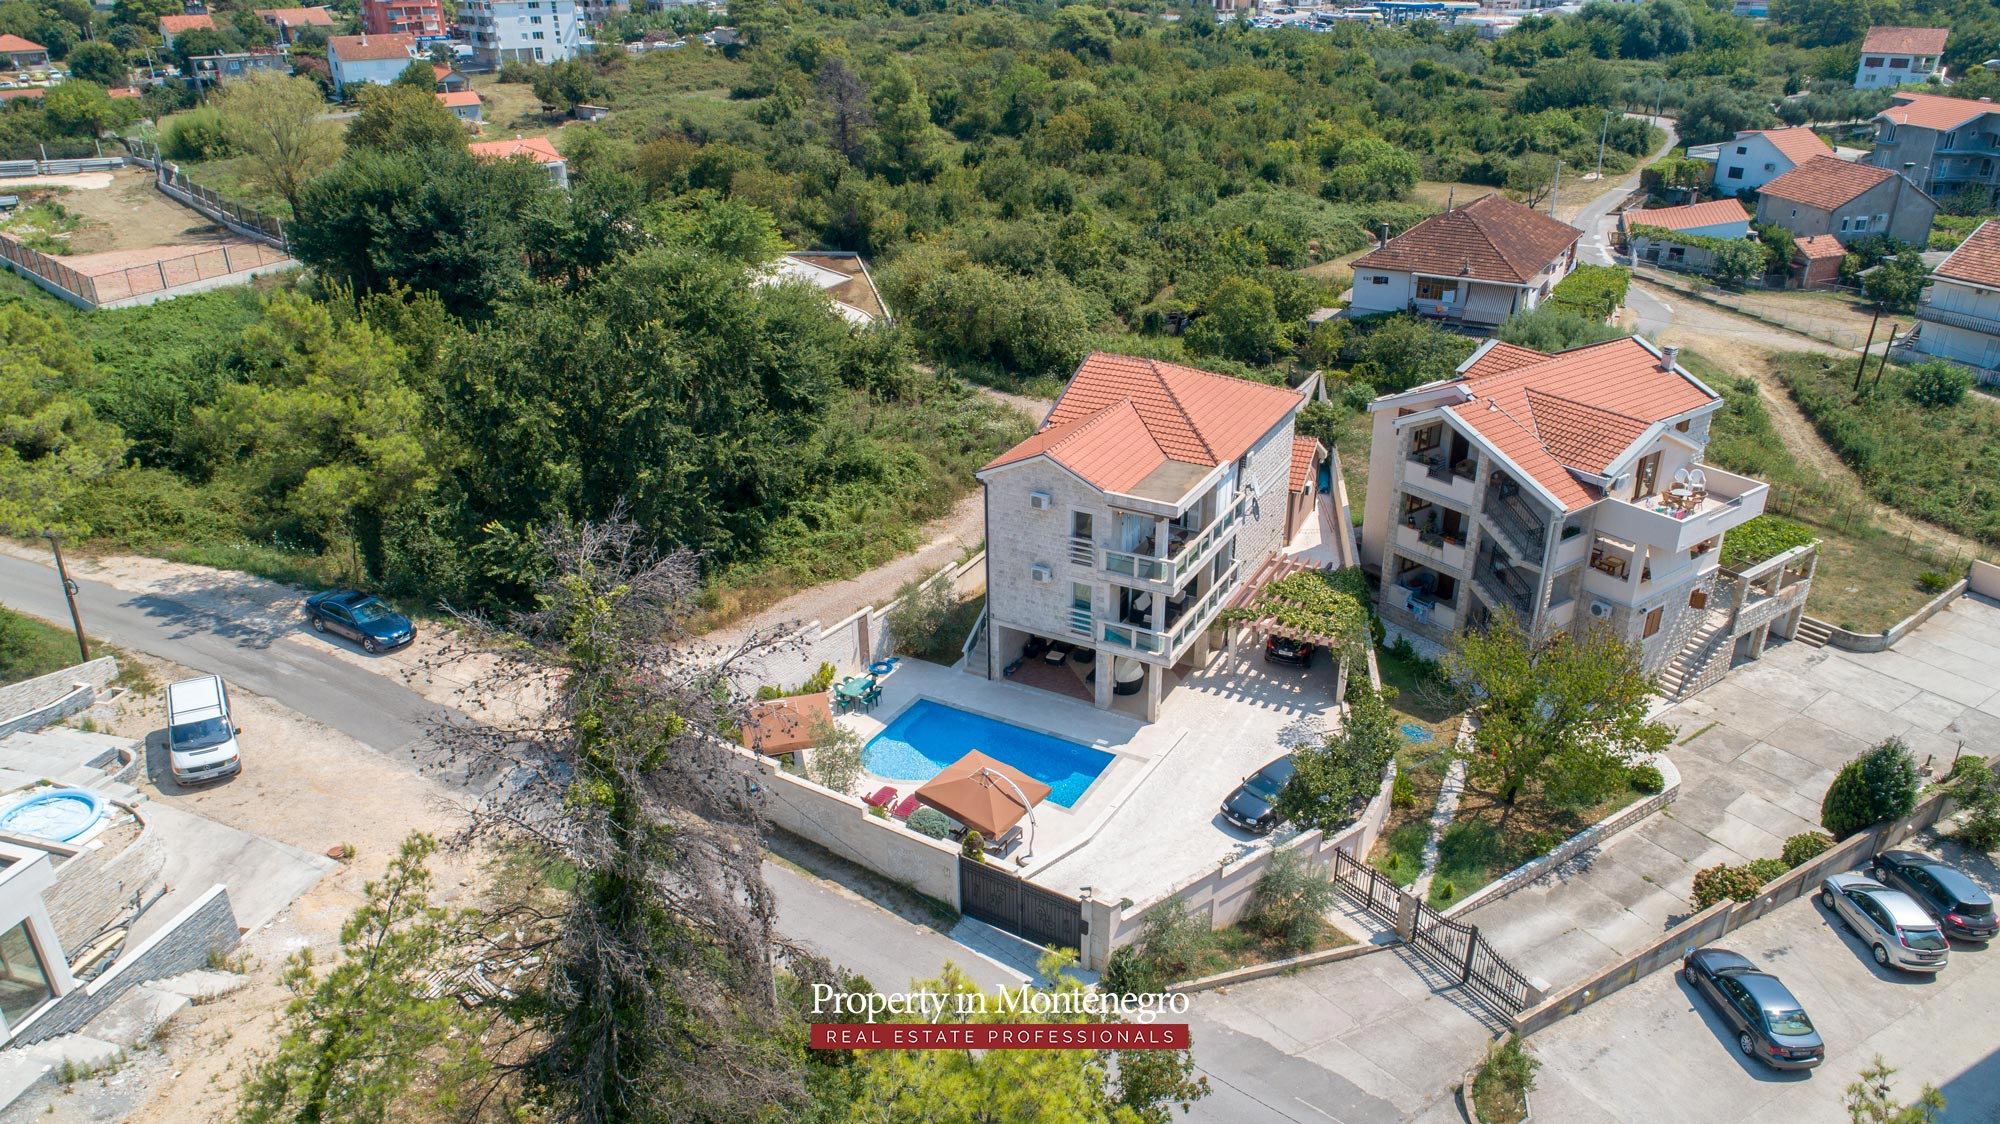 Villa-with-swimming-pool-for-sale-in-Tivat (1).jpg